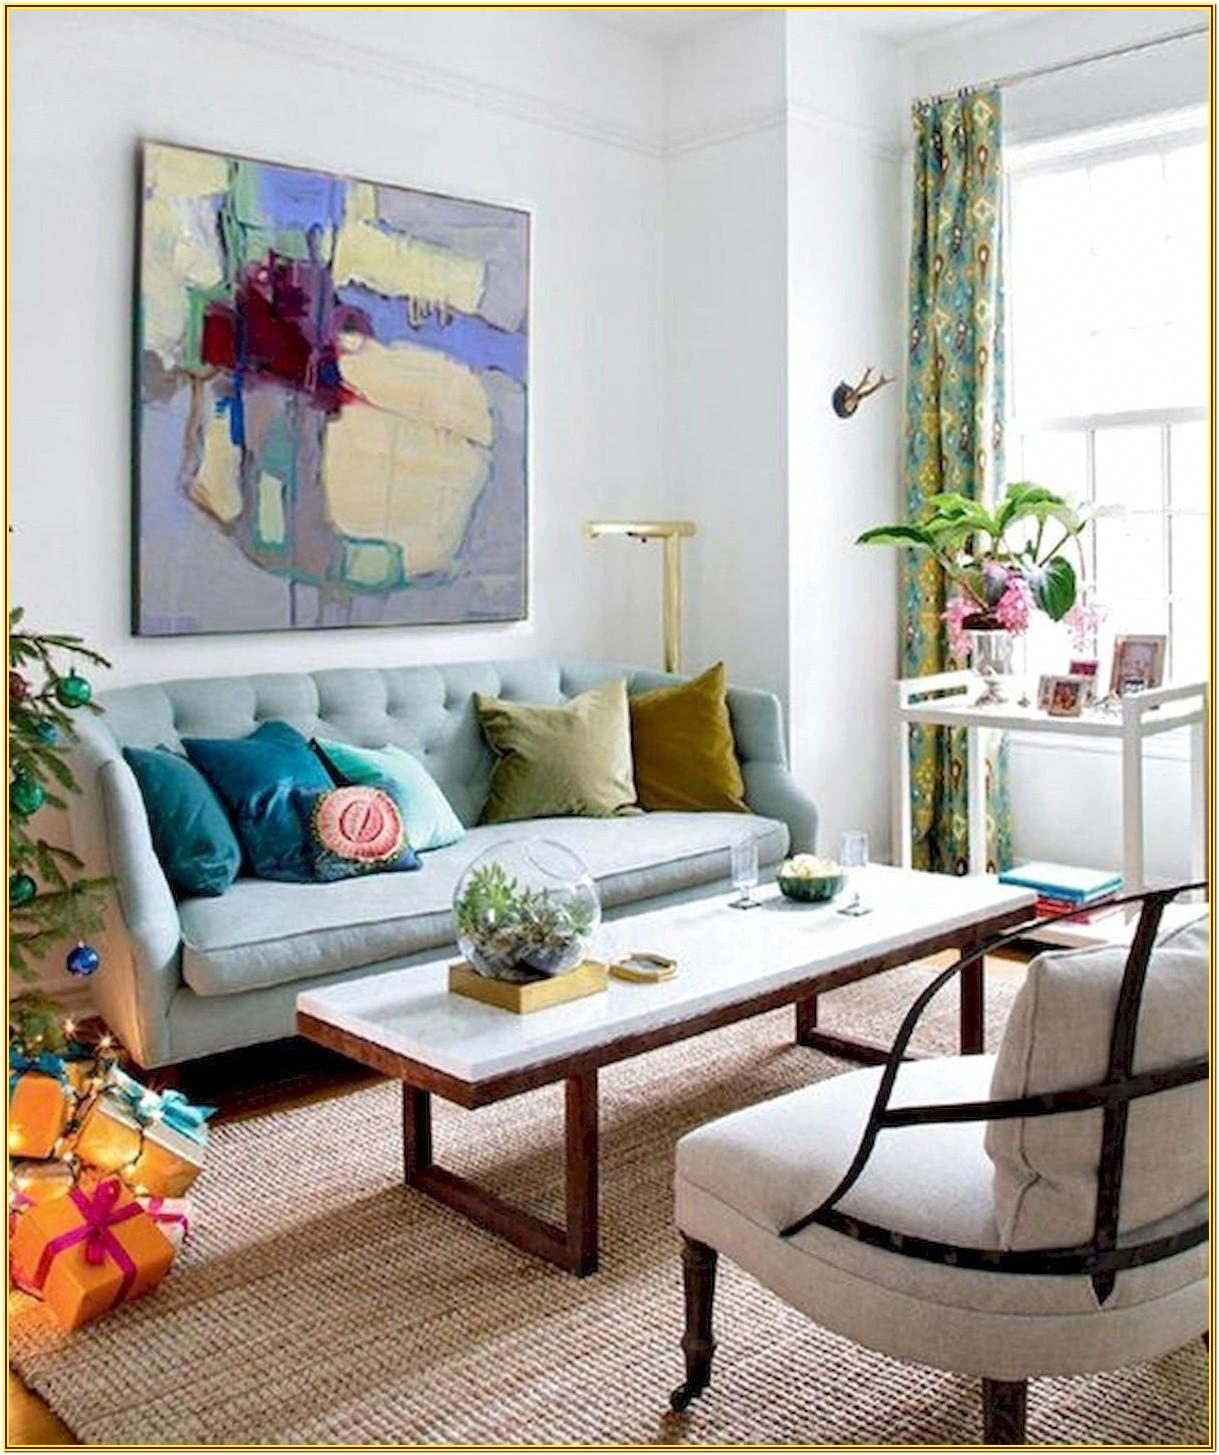 Eclectic Mid Century Modern Living Room Furniture